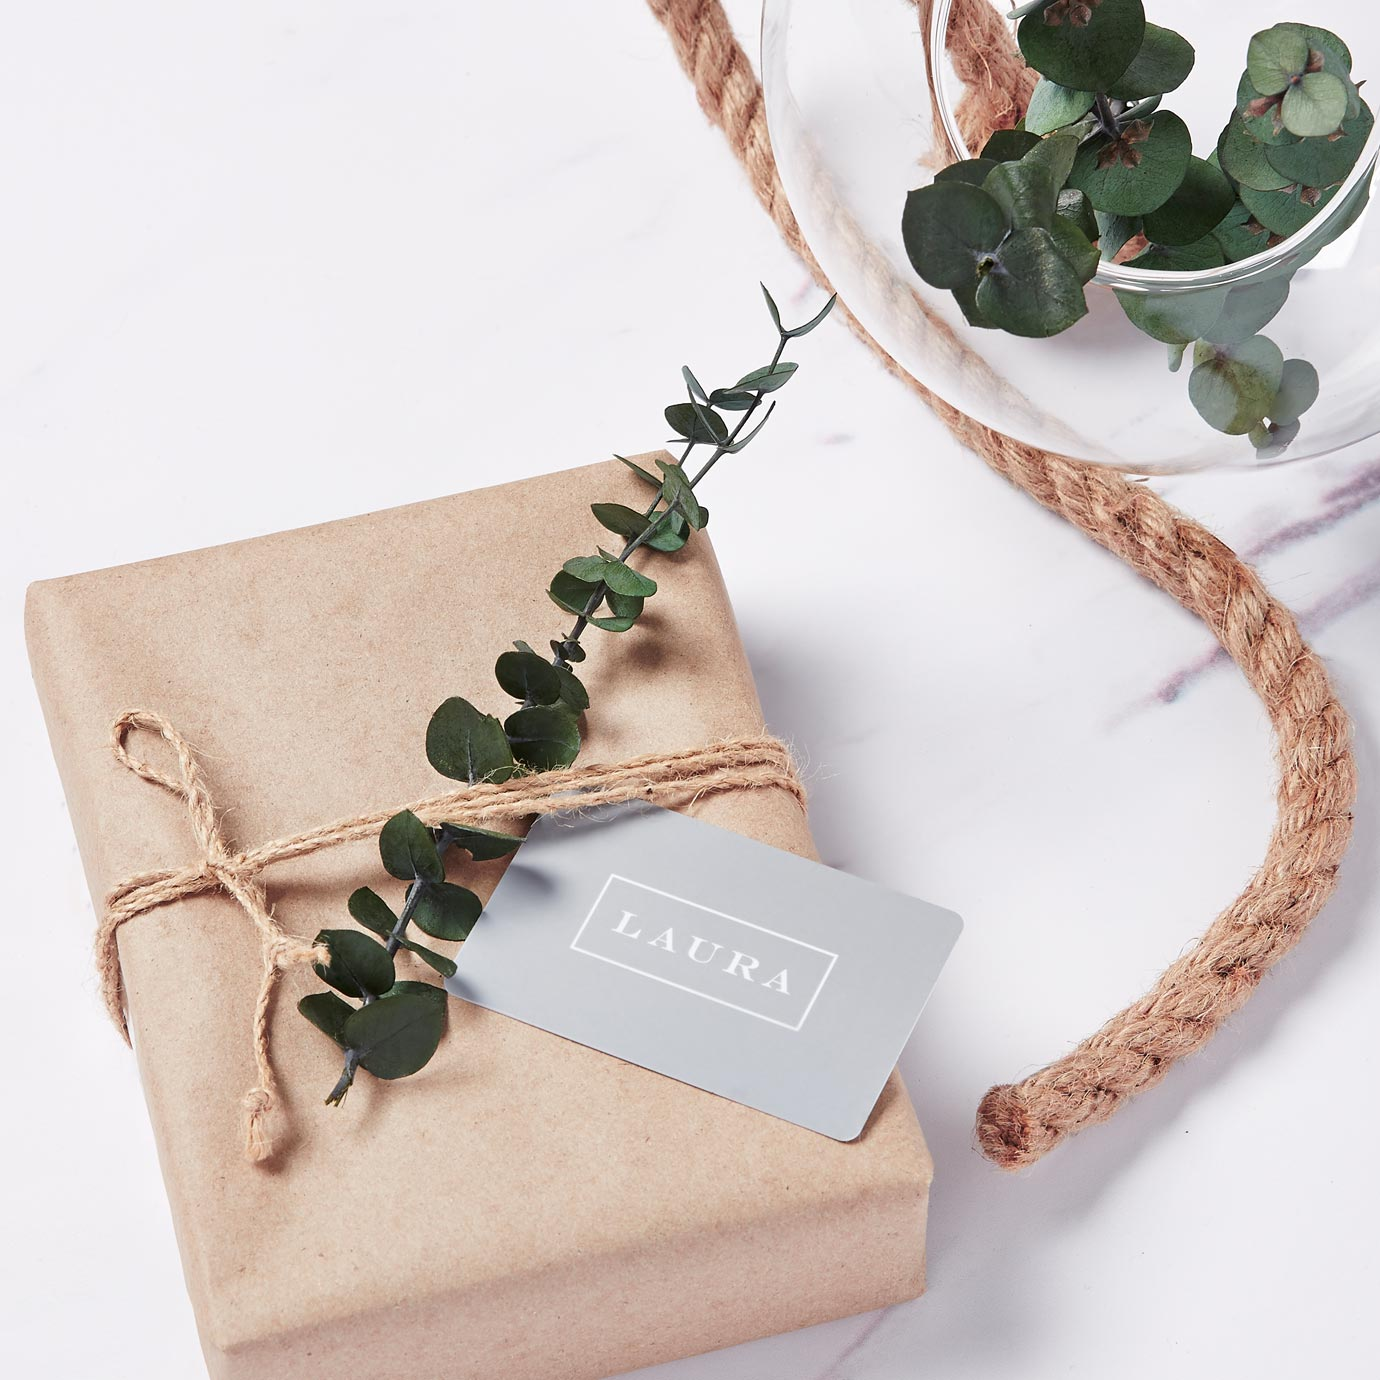 Laura 2017 Gift Guide - Shop Gift Cards